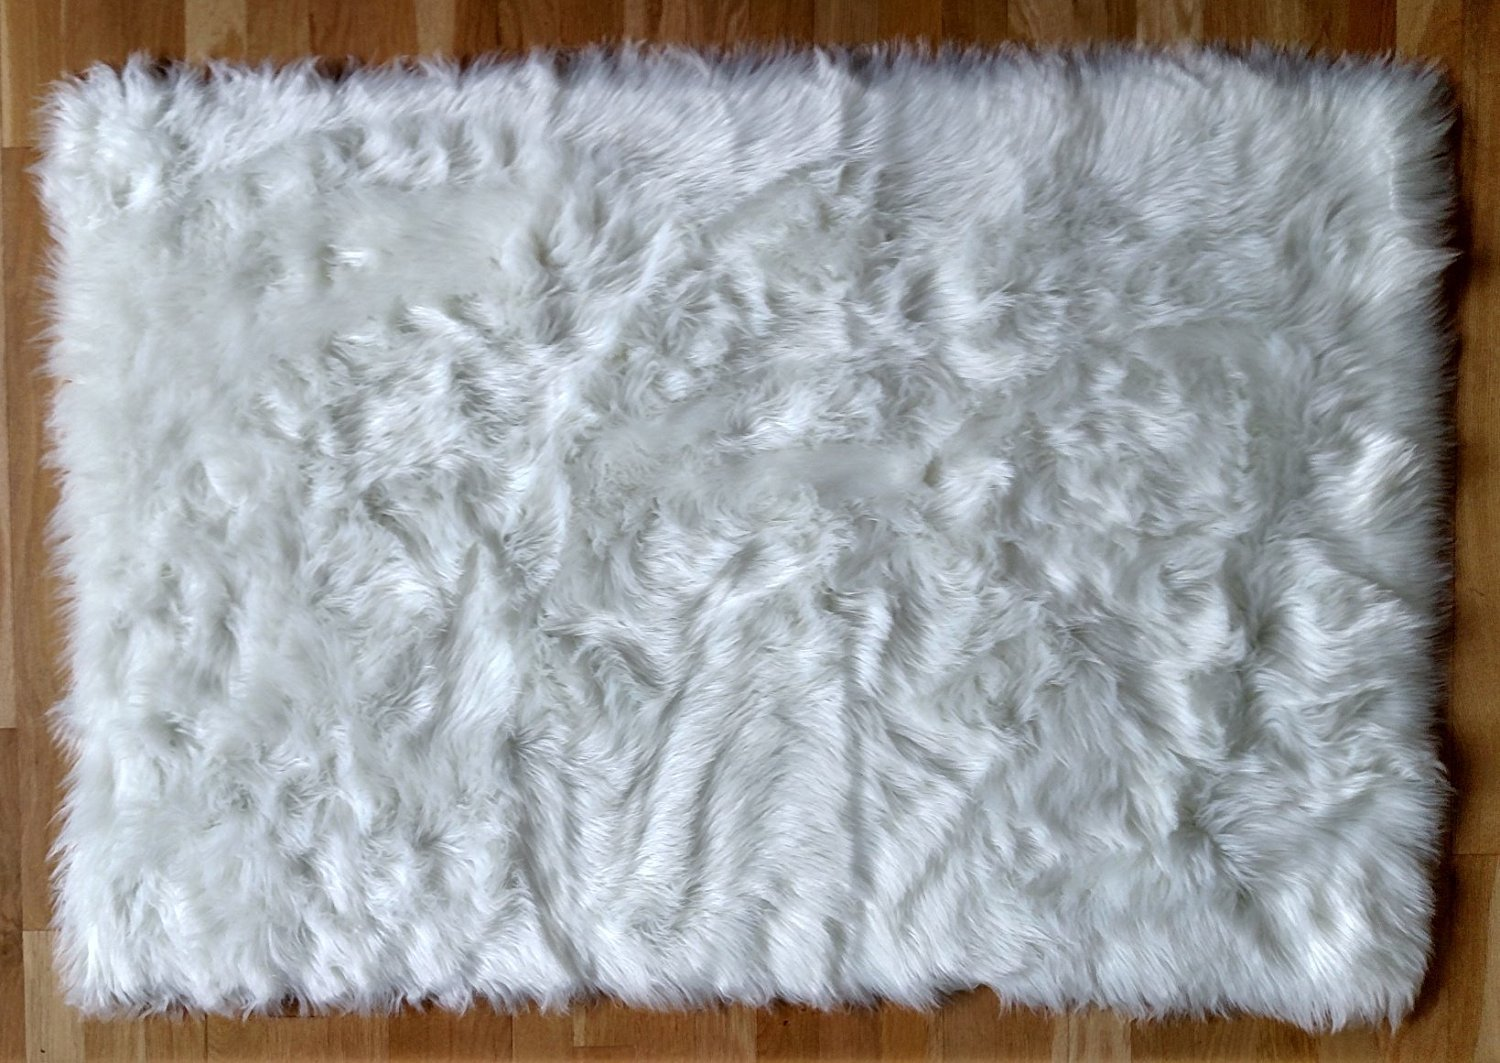 Get Quotations Faux Fur Rug Sheepskin White Area 3x5 Flokati Gy